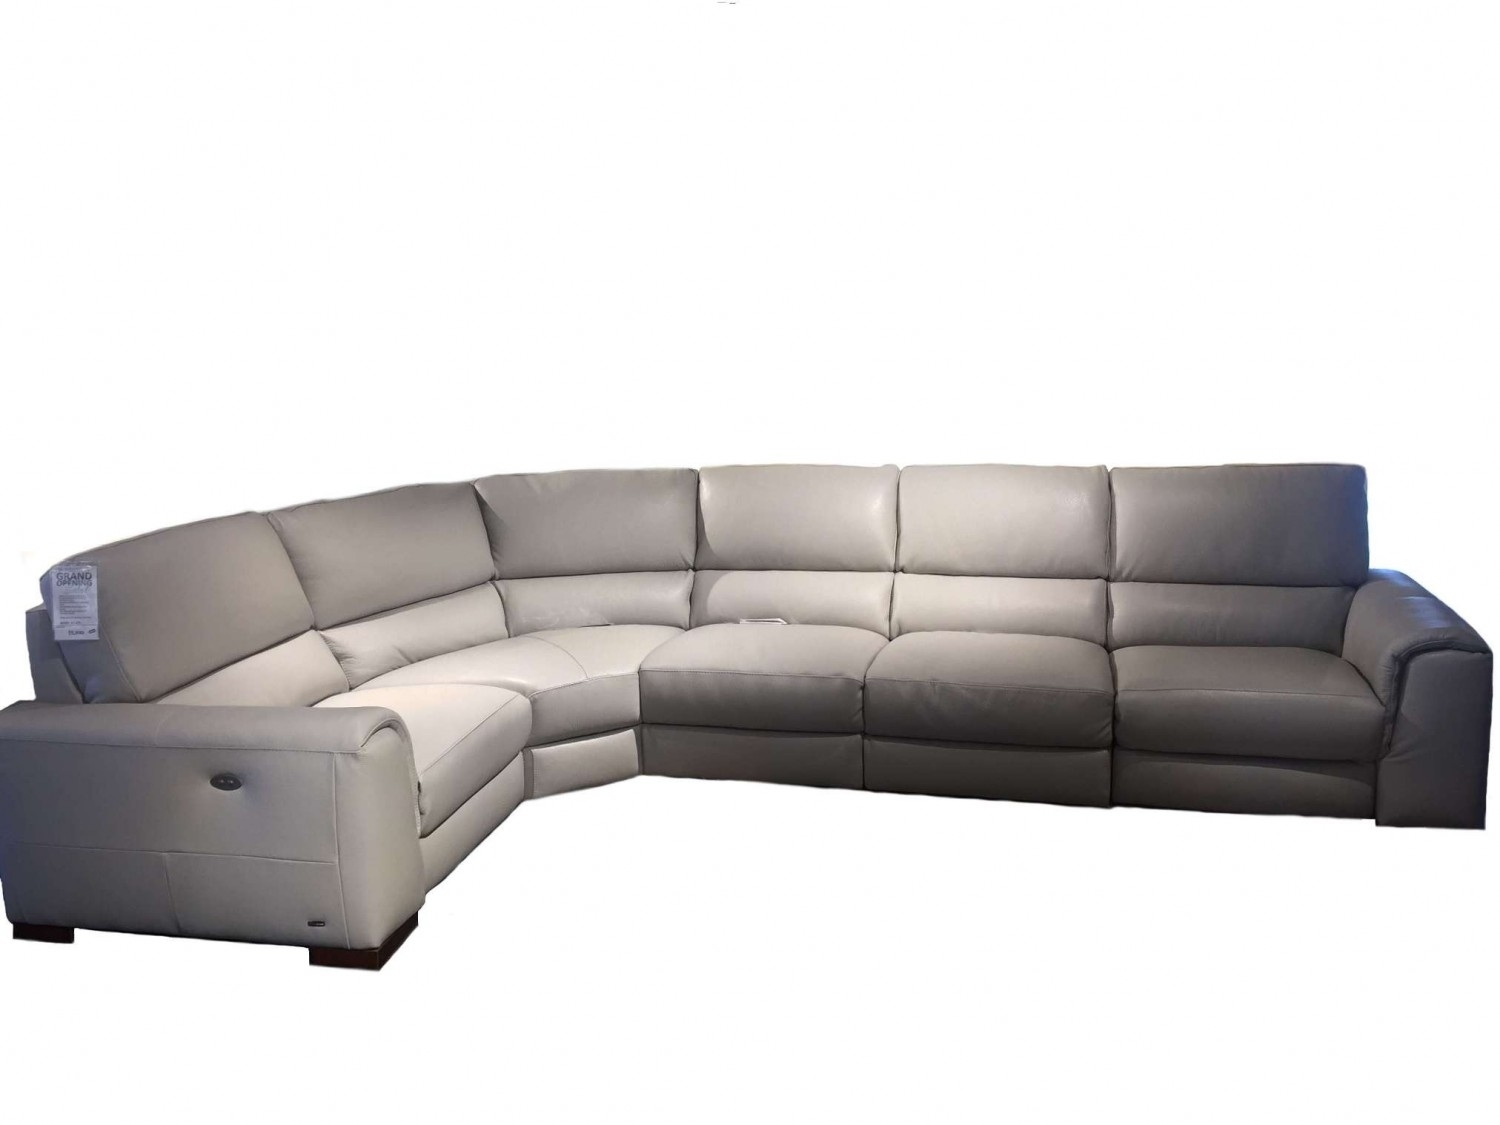 Natuzzi Editions Davide Leather Sectional | Leather Sectional Throughout Natuzzi Sectional Sofas (Image 3 of 10)